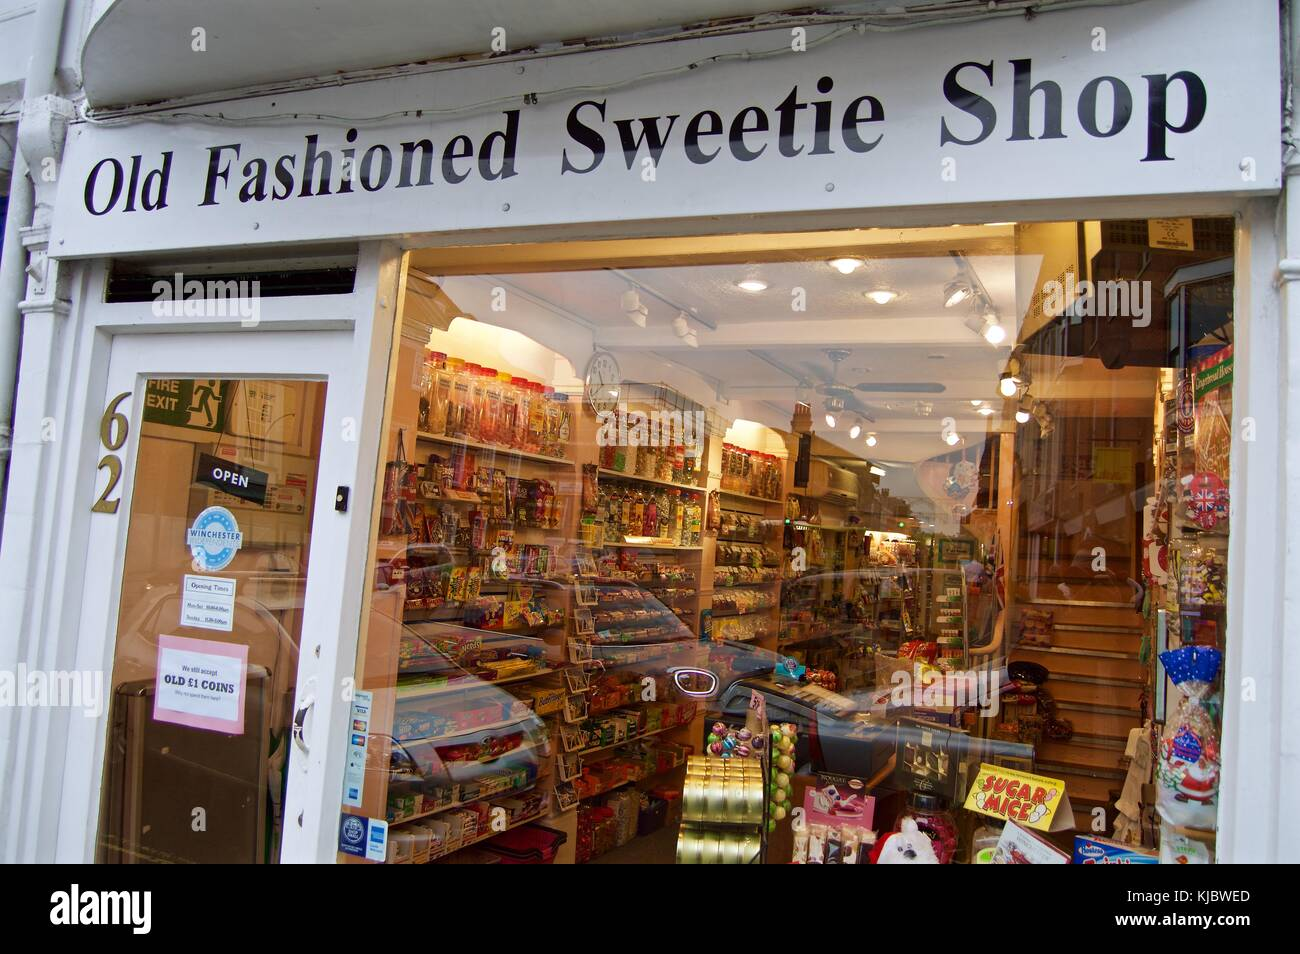 Old Fashioned Sweetie Shop, Winchester, England, UK - Stock Image